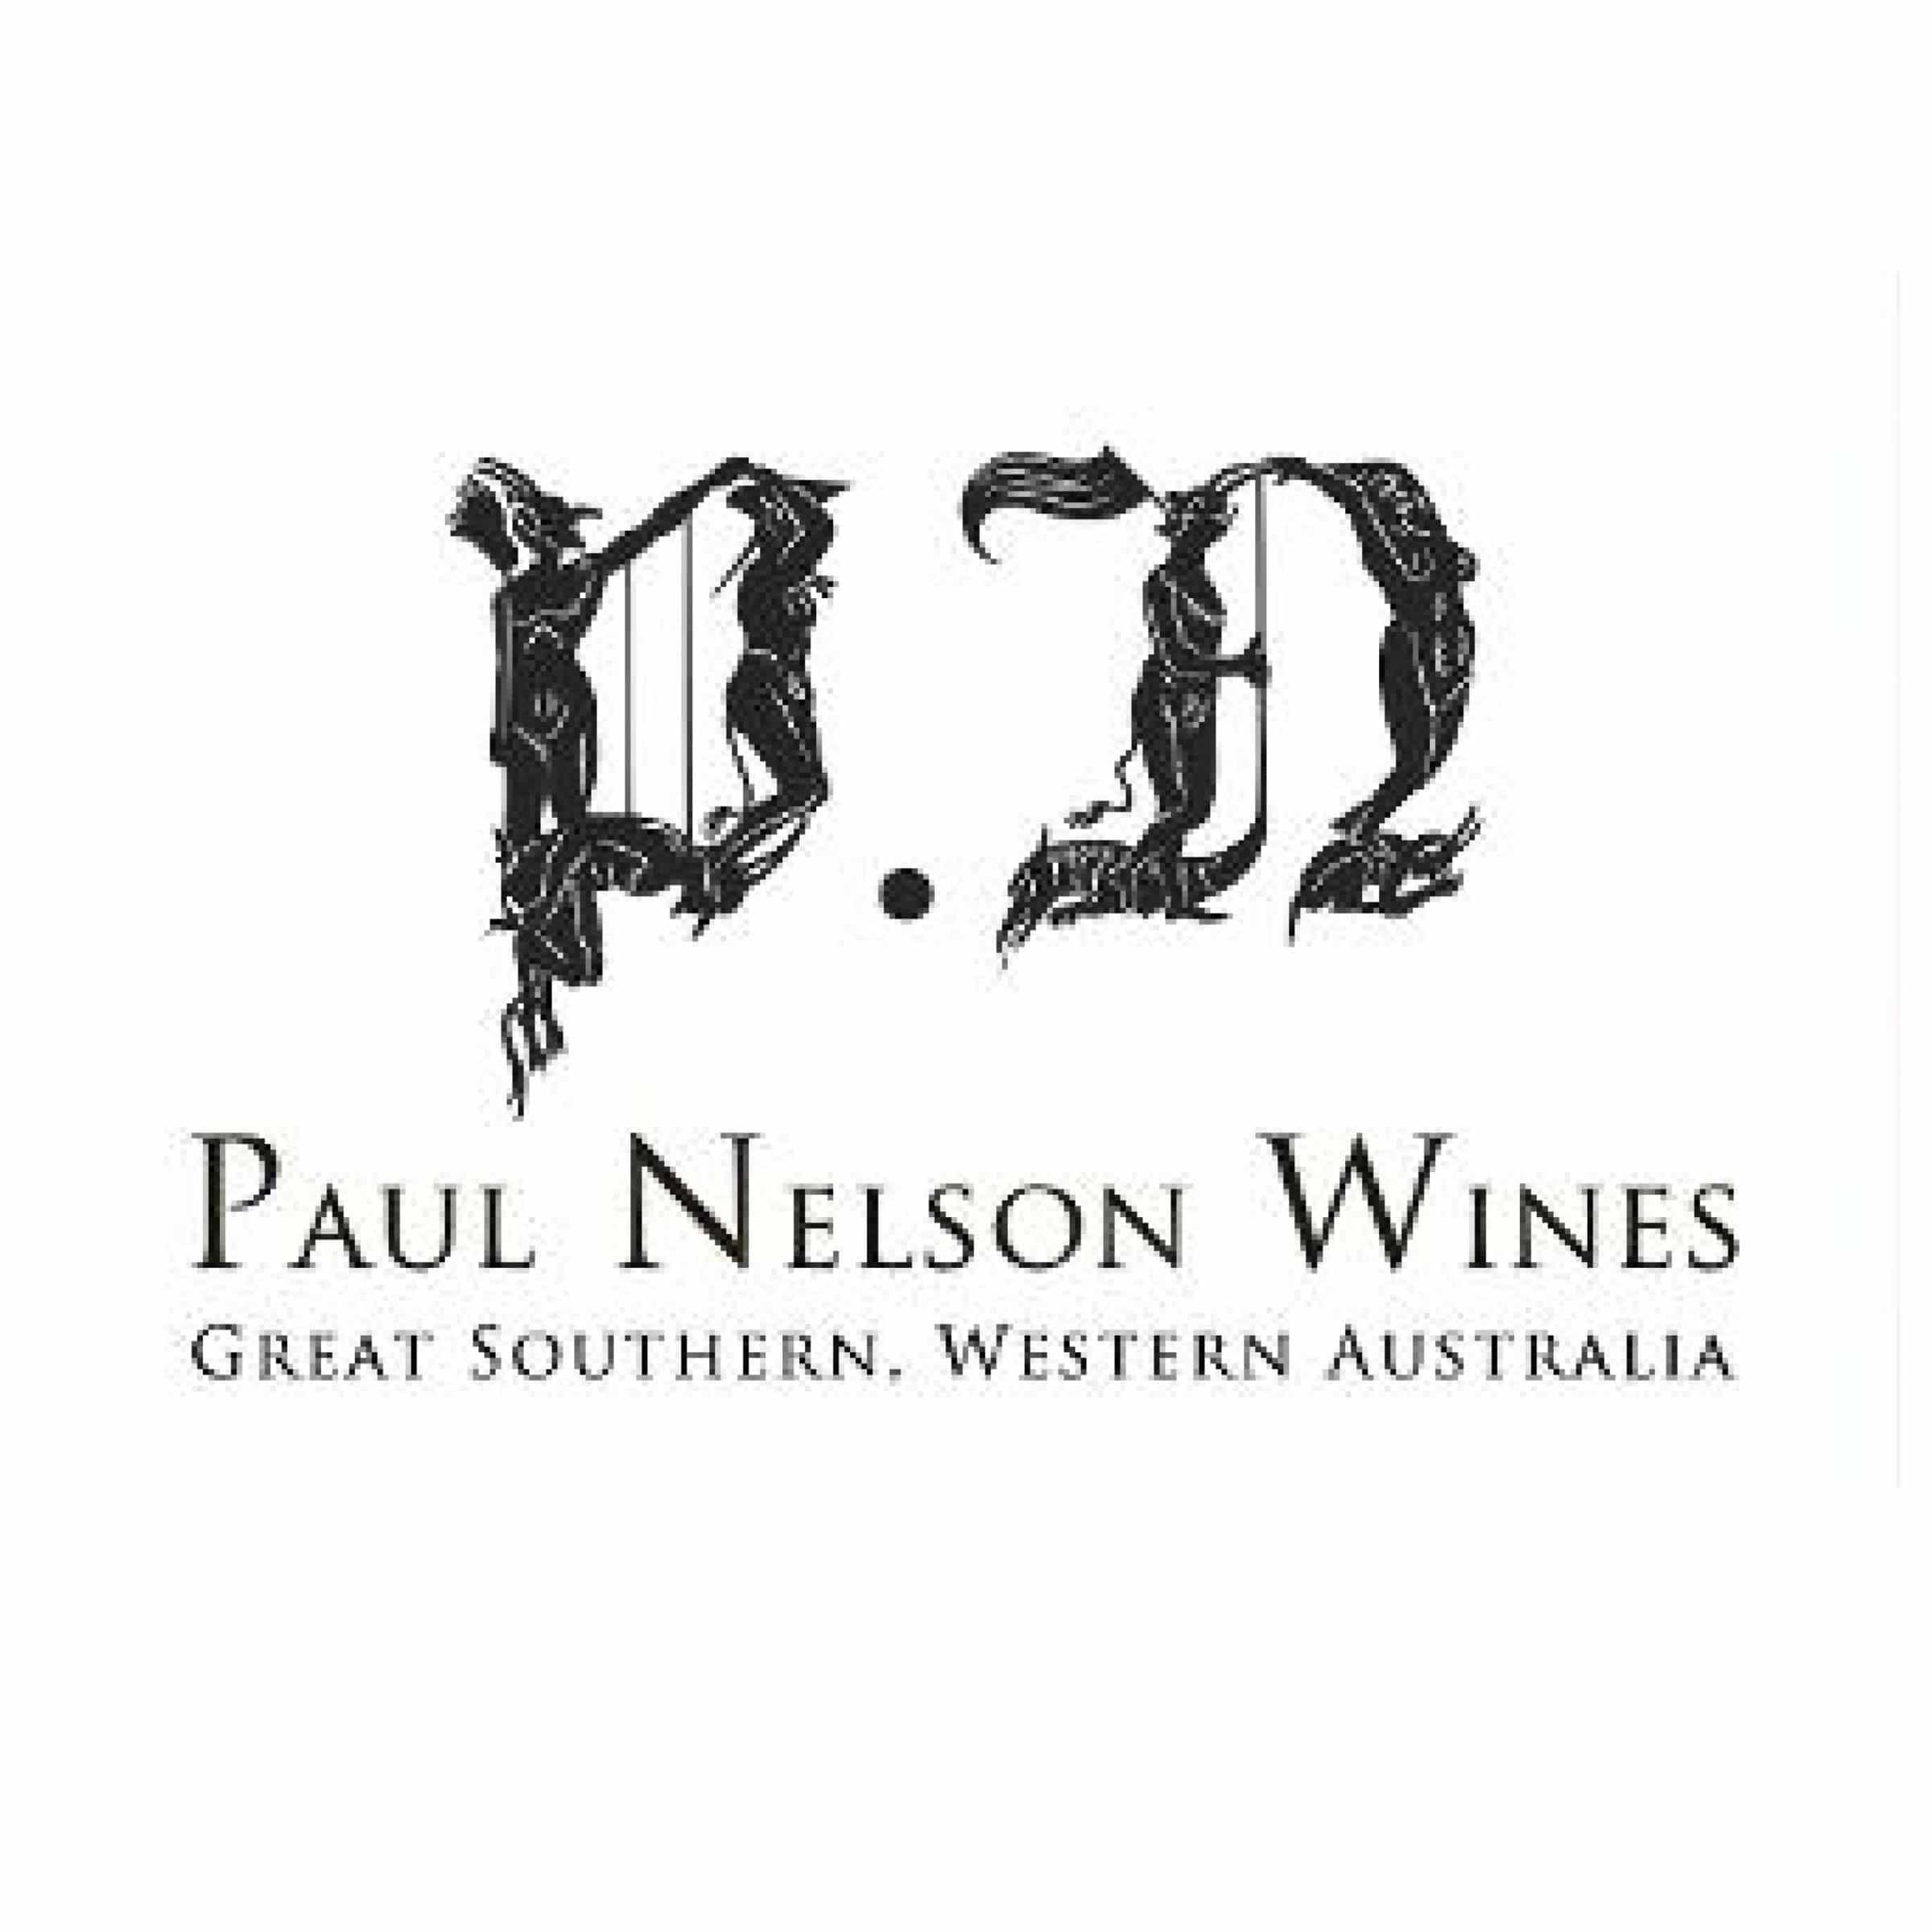 swan river sailing supporter paul nelson wines logo